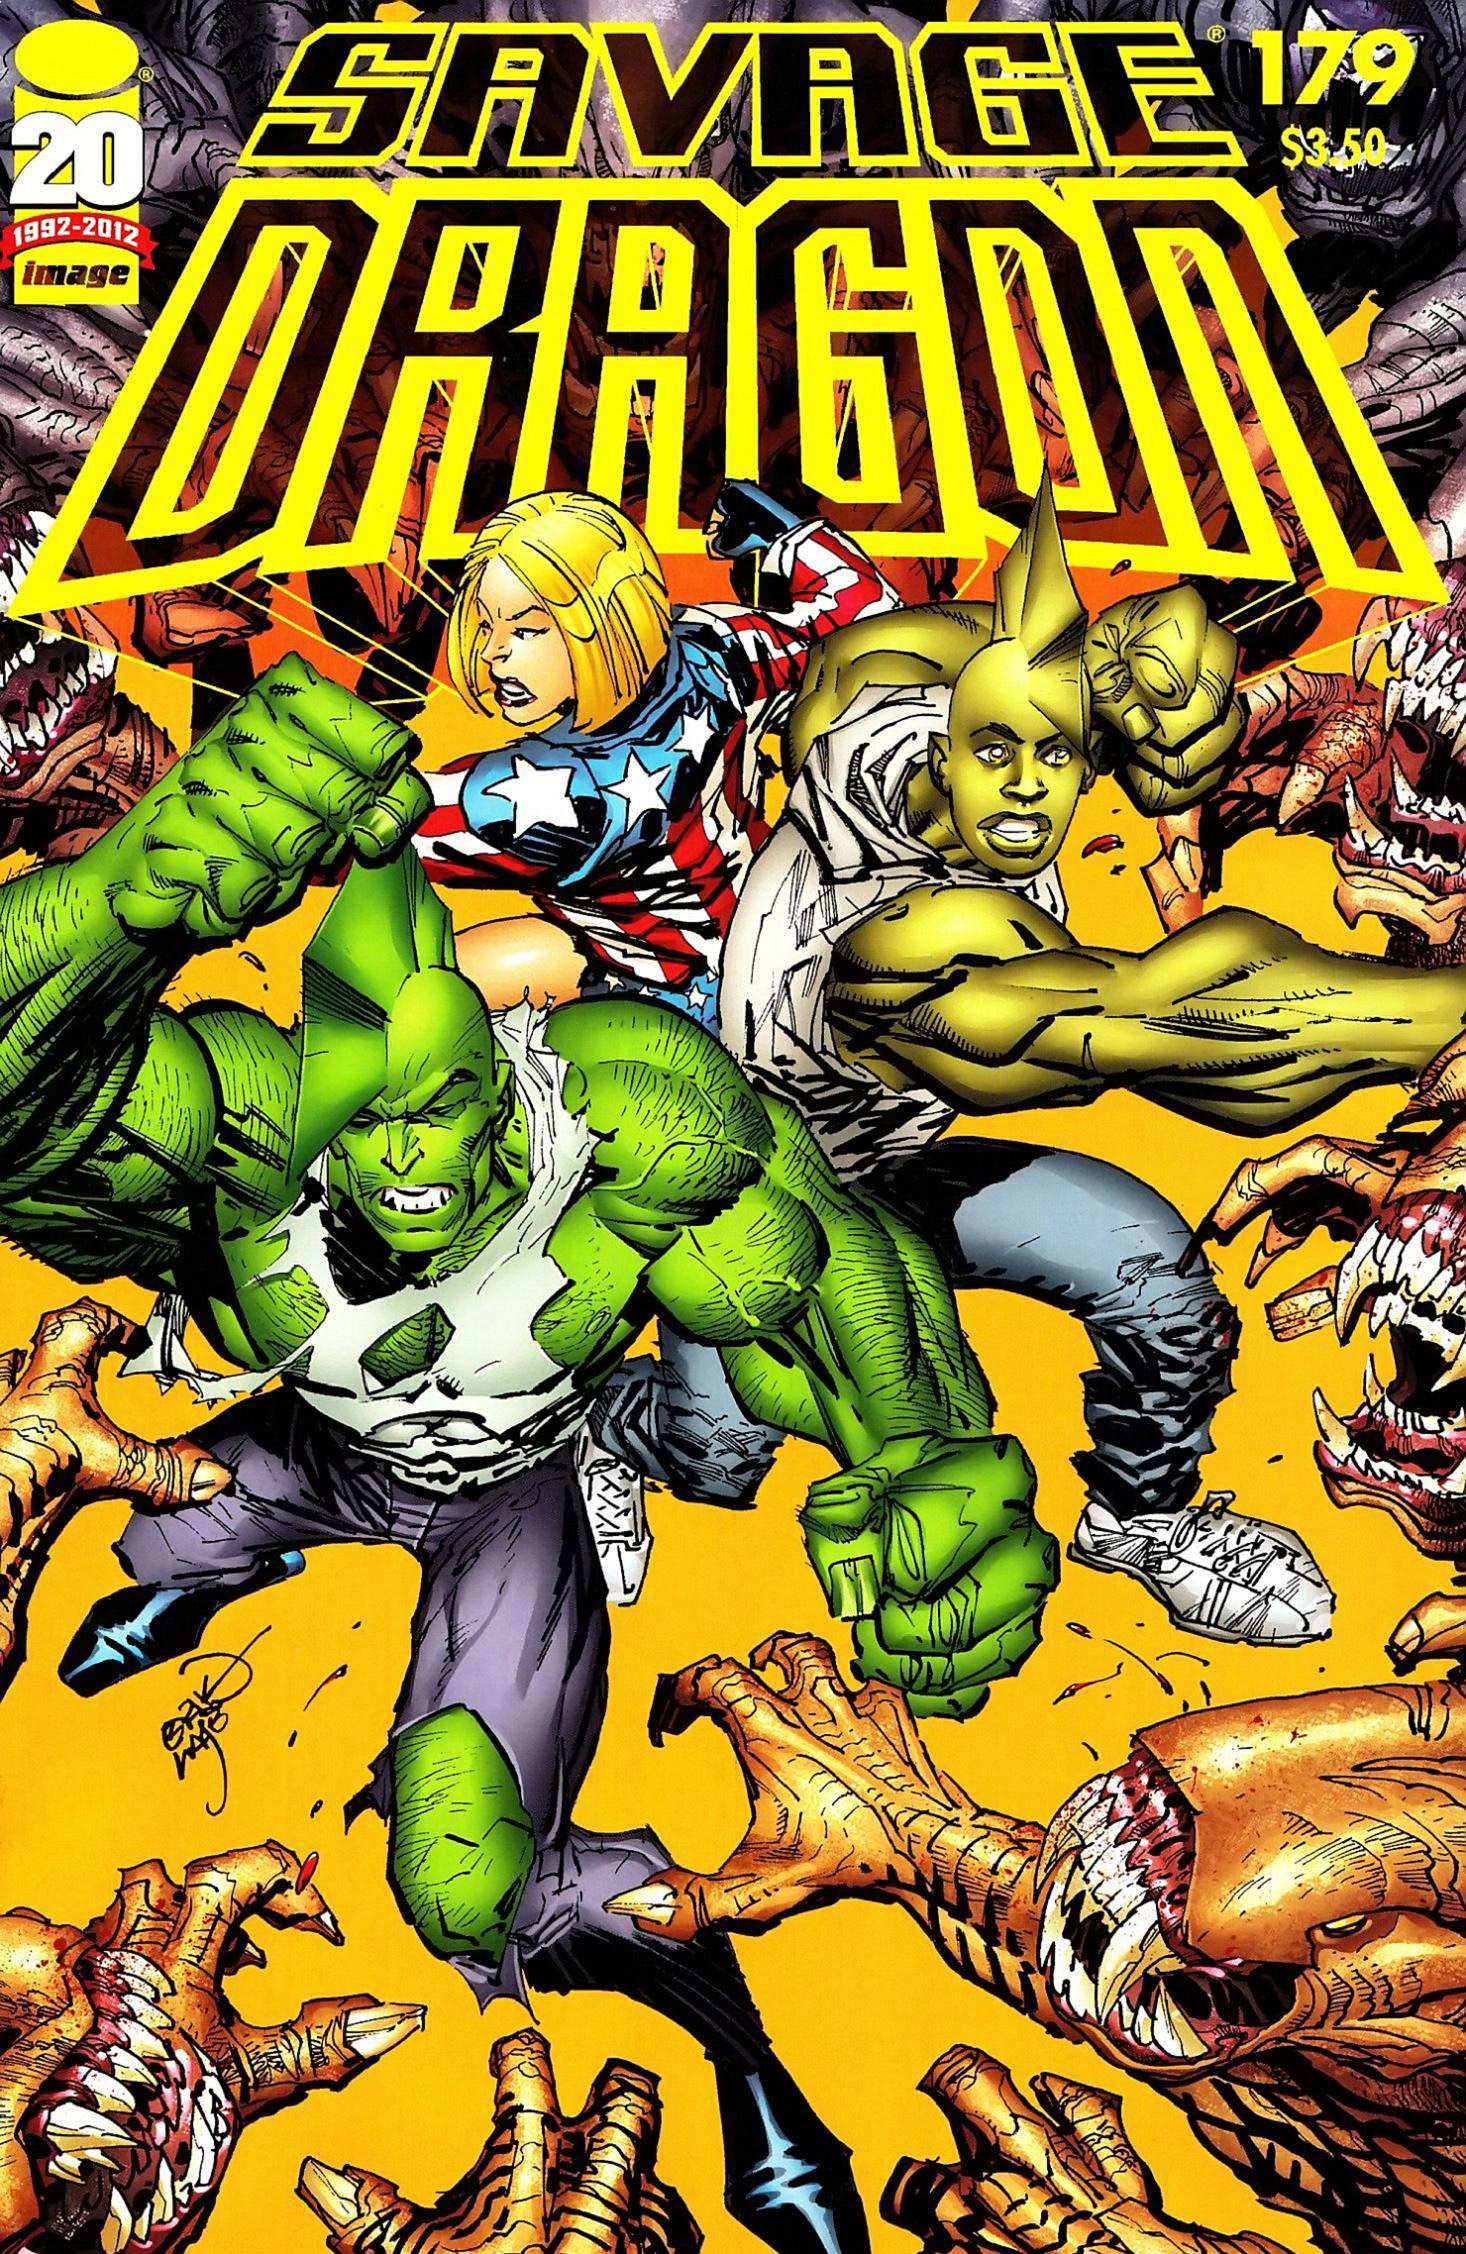 Cover Savage Dragon Vol.2 #179